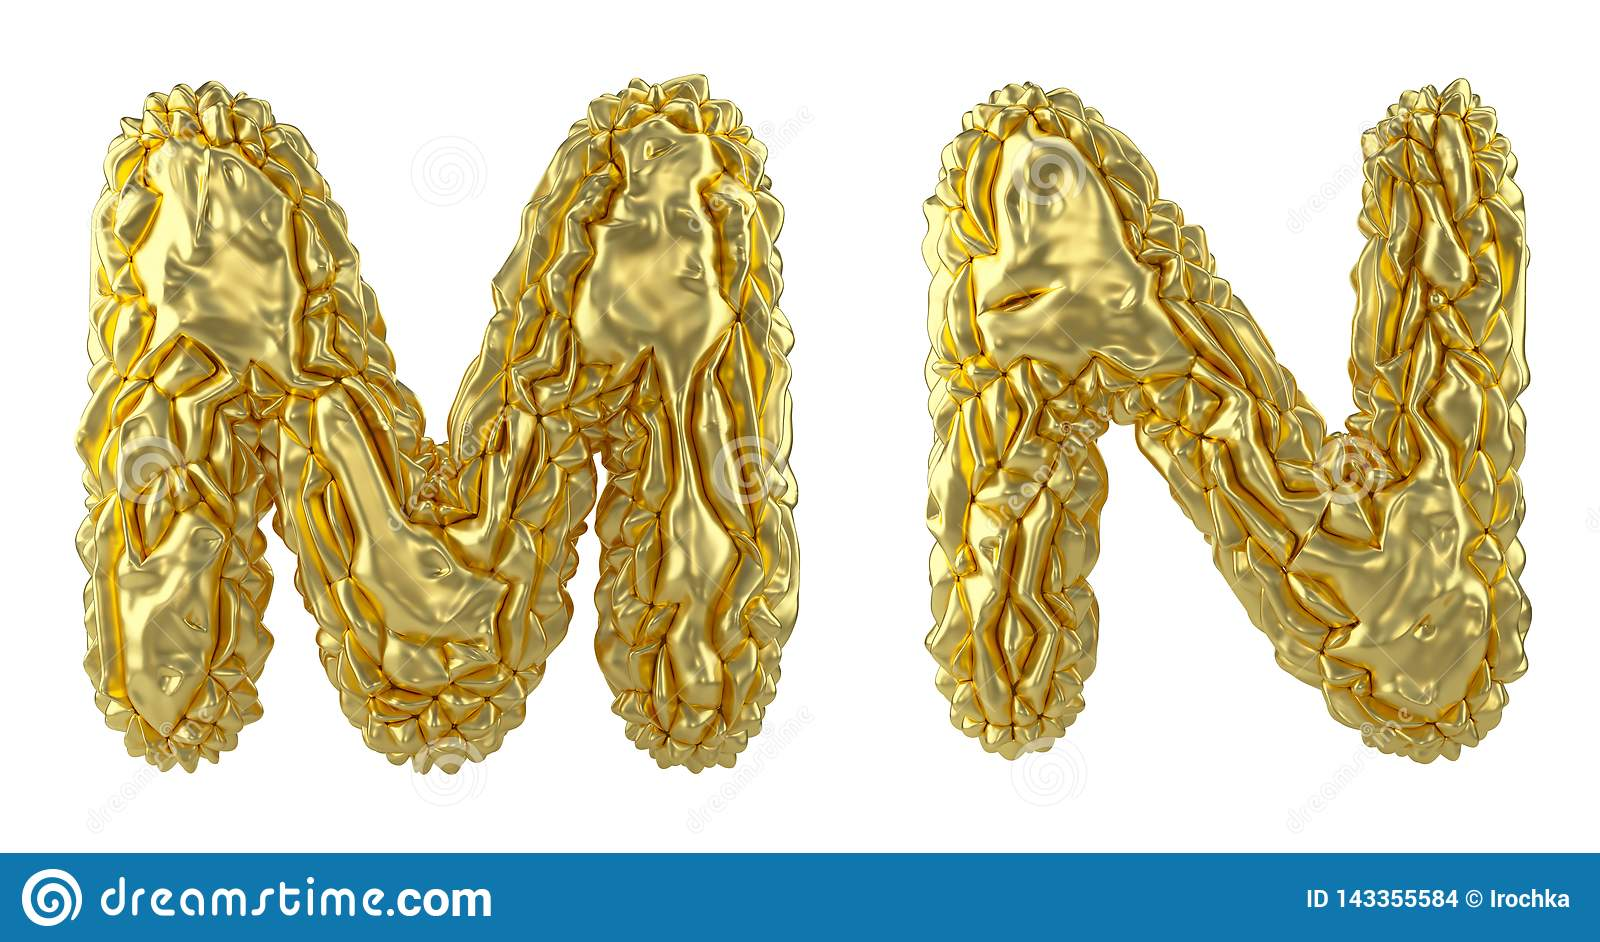 Realistic 3D letters set M, N made of crumpled foil. Collection symbols of crumpled gold foil isolated on white